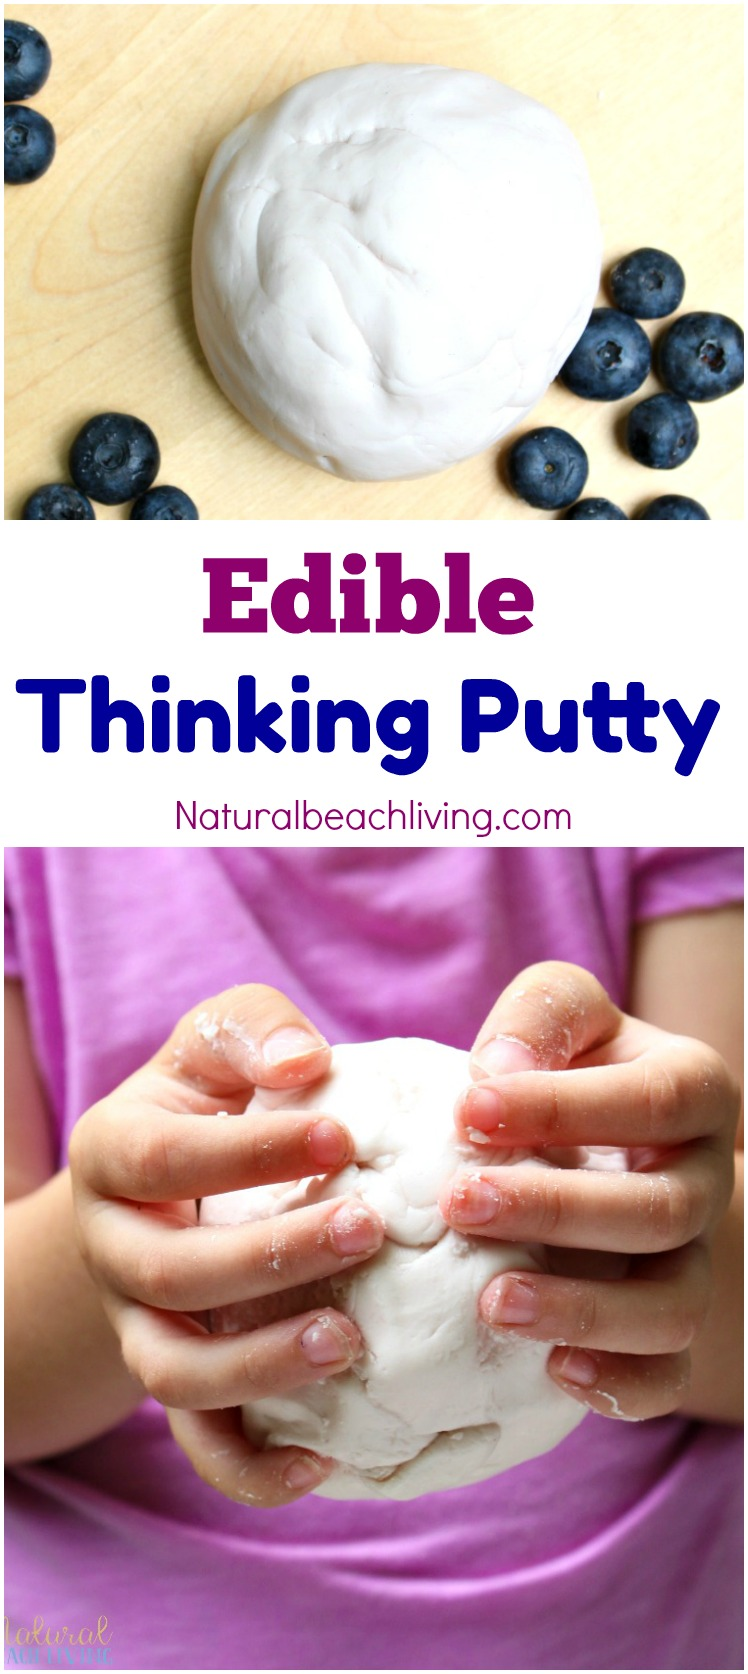 How to make edible thinking putty recipe